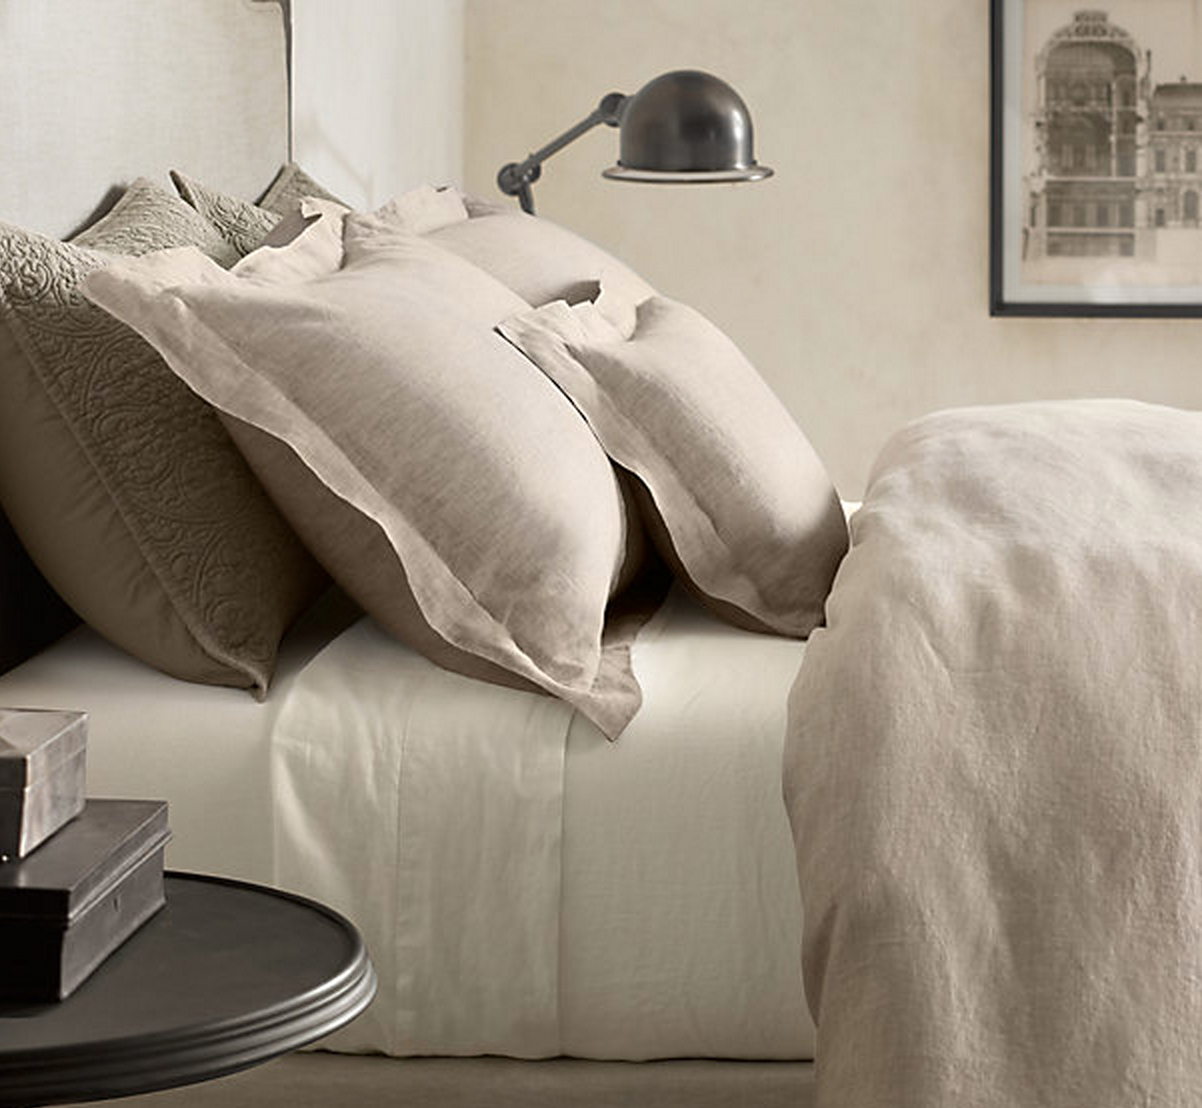 Restoration Hardware  STONEWASHED BELGIAN LINEN BEDDING COLLECTION in Dune